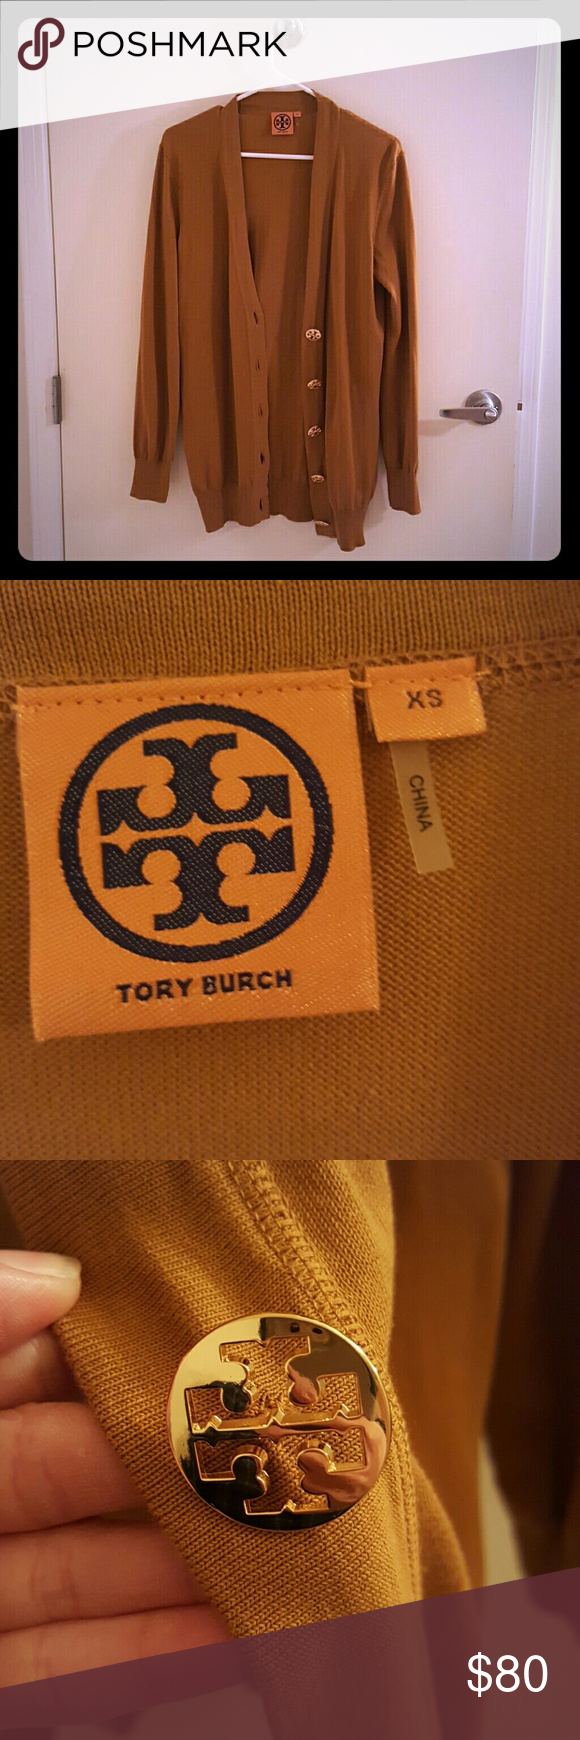 Tory Burch Long Cardigan Long Tory Burch Cardigan in dark mustard yellow. Brand new, no tags, in size XS. Tory Burch Sweaters Cardigans